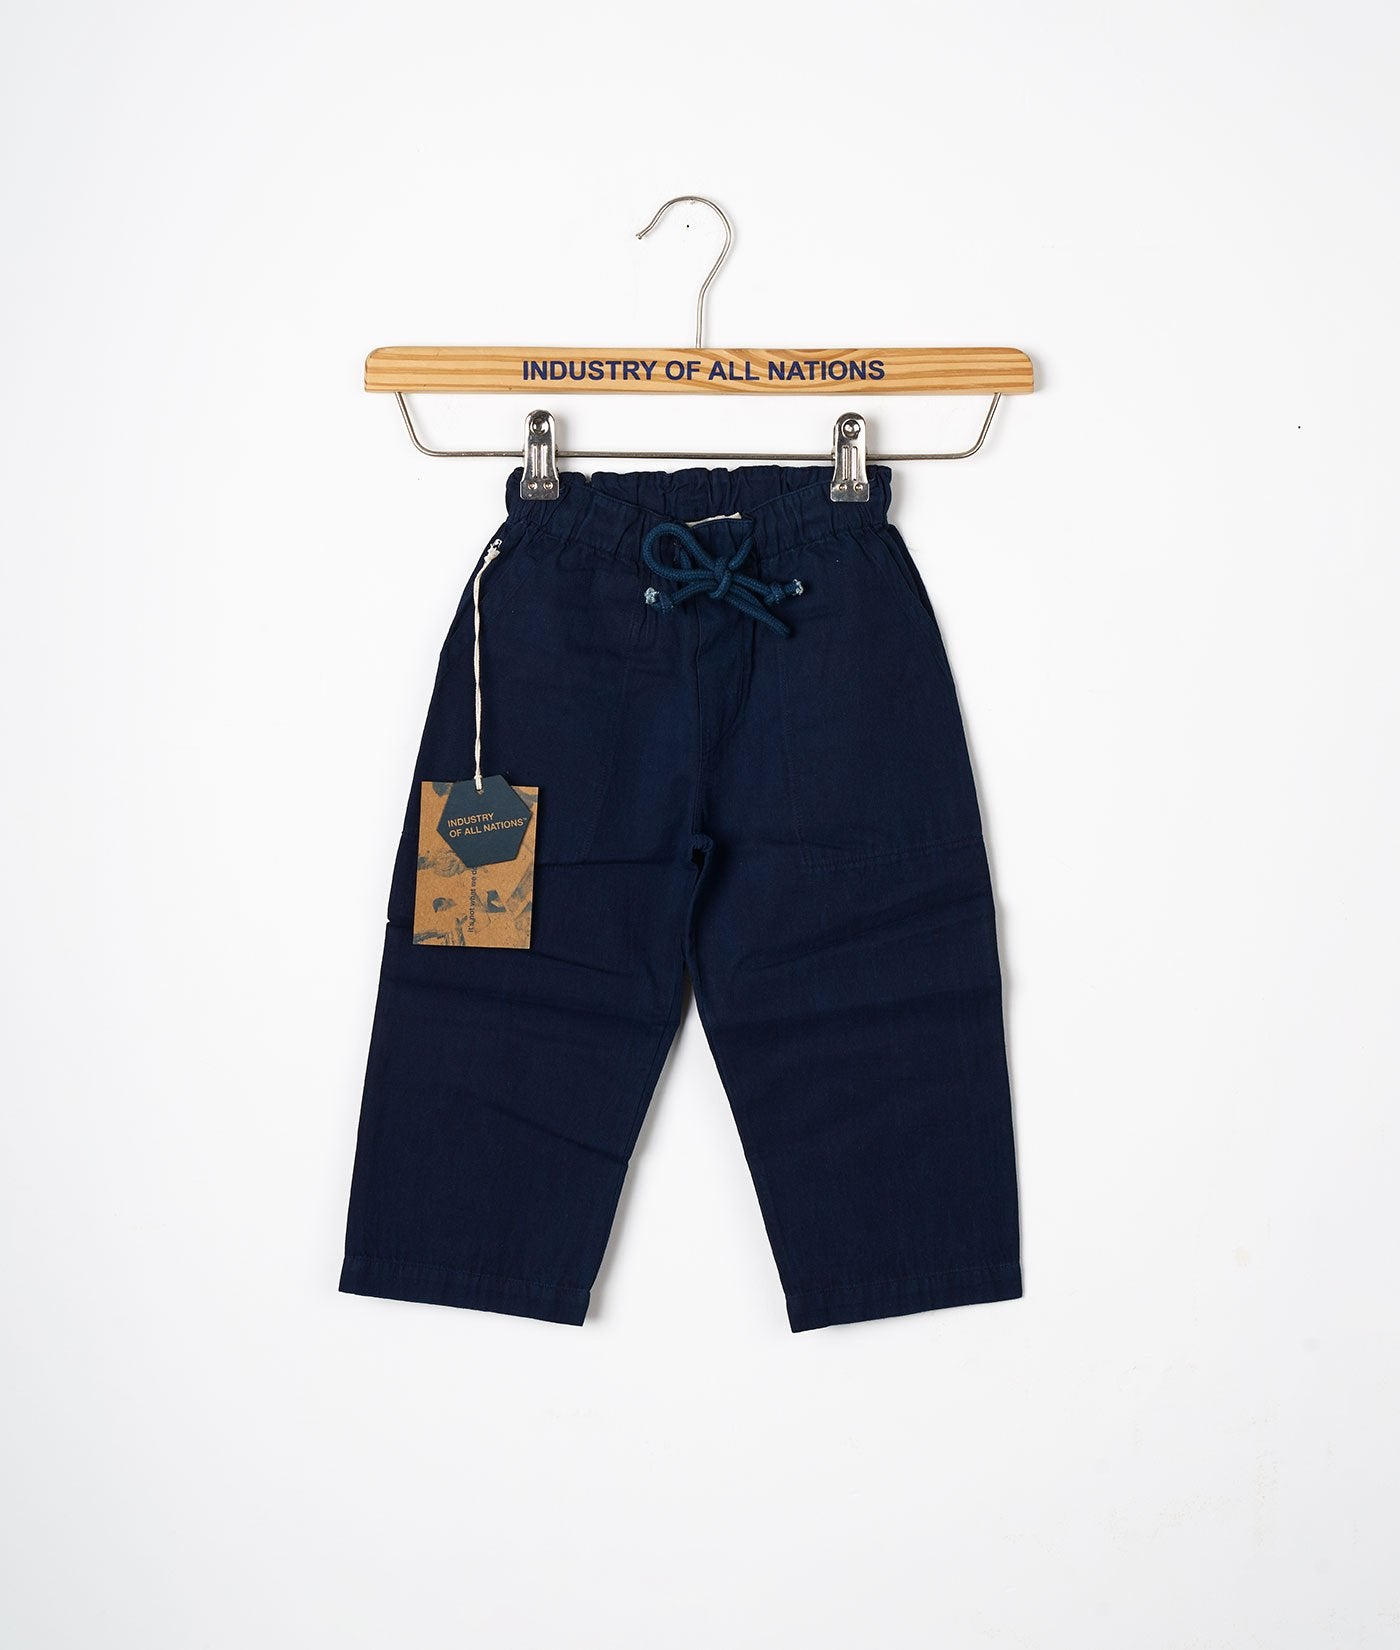 Industry of All Nations Organic Cotton Kids Drawstring Pants Indigo 12